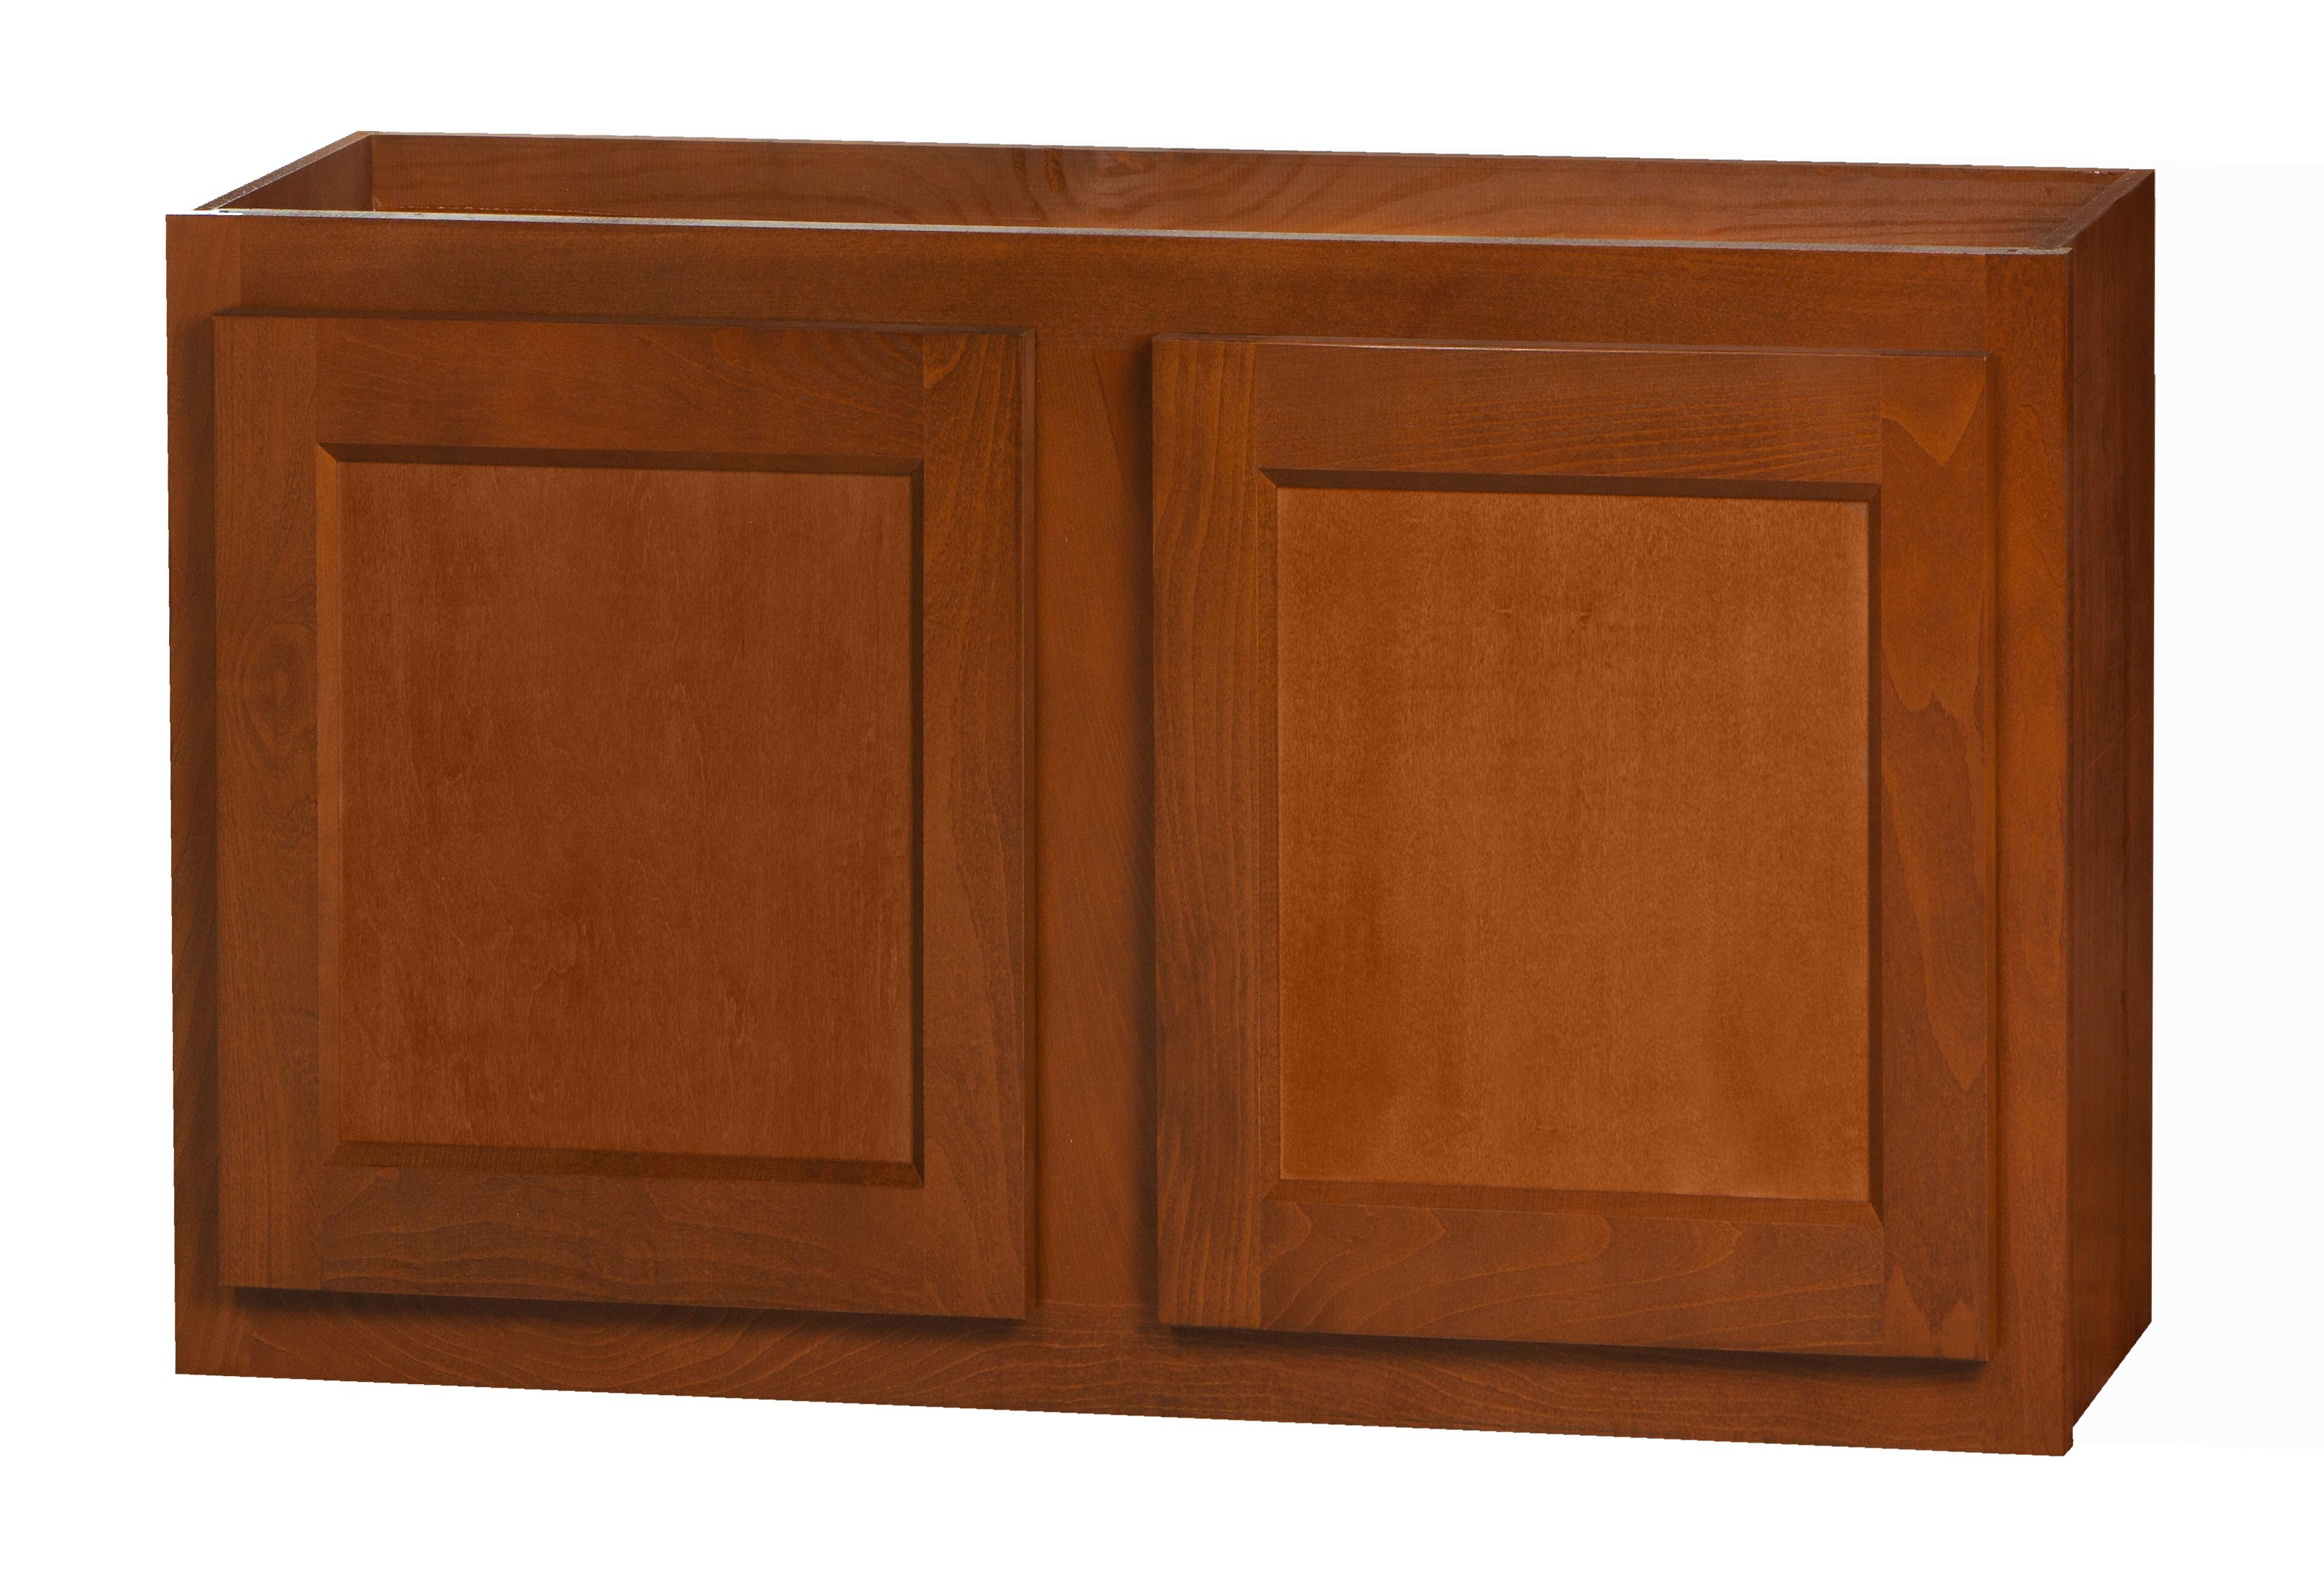 Phenomenal 30 X 18 Inch Glenwood Wall Cabinet Beutiful Home Inspiration Semekurdistantinfo